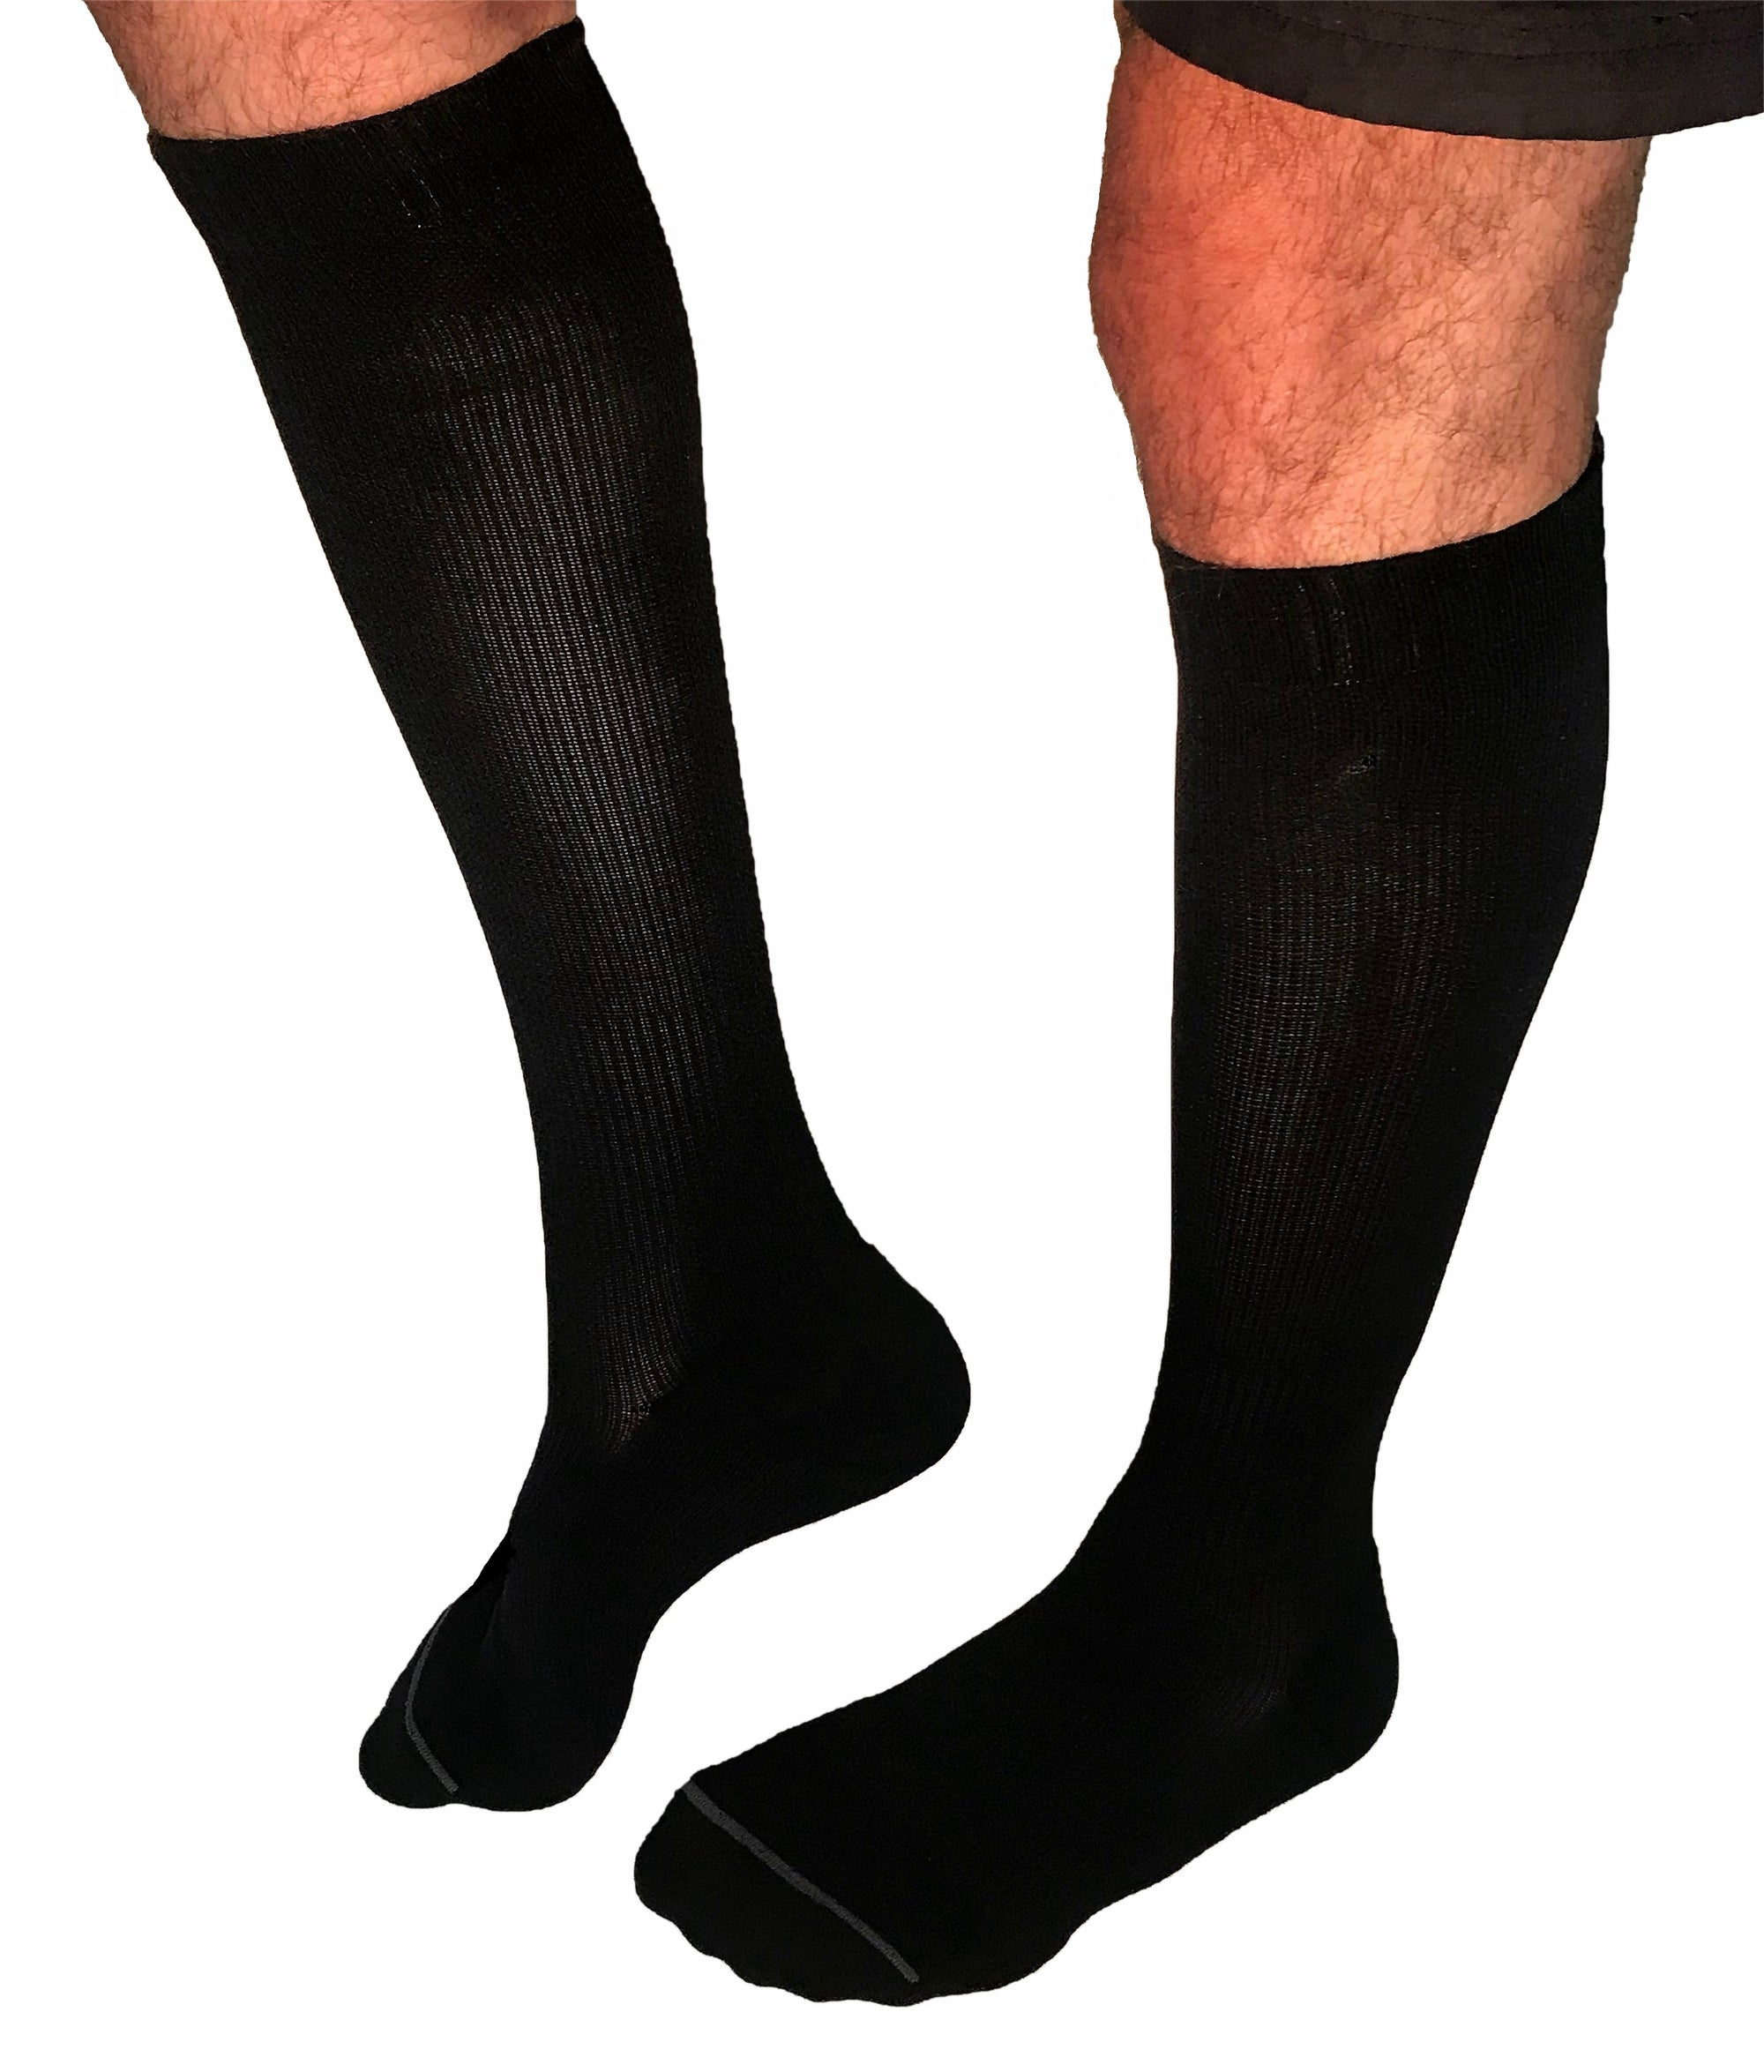 1043c52f187 Ultimate Bamboo Compression Socks for larger calves - Shock Aid Adaptive  Equipment